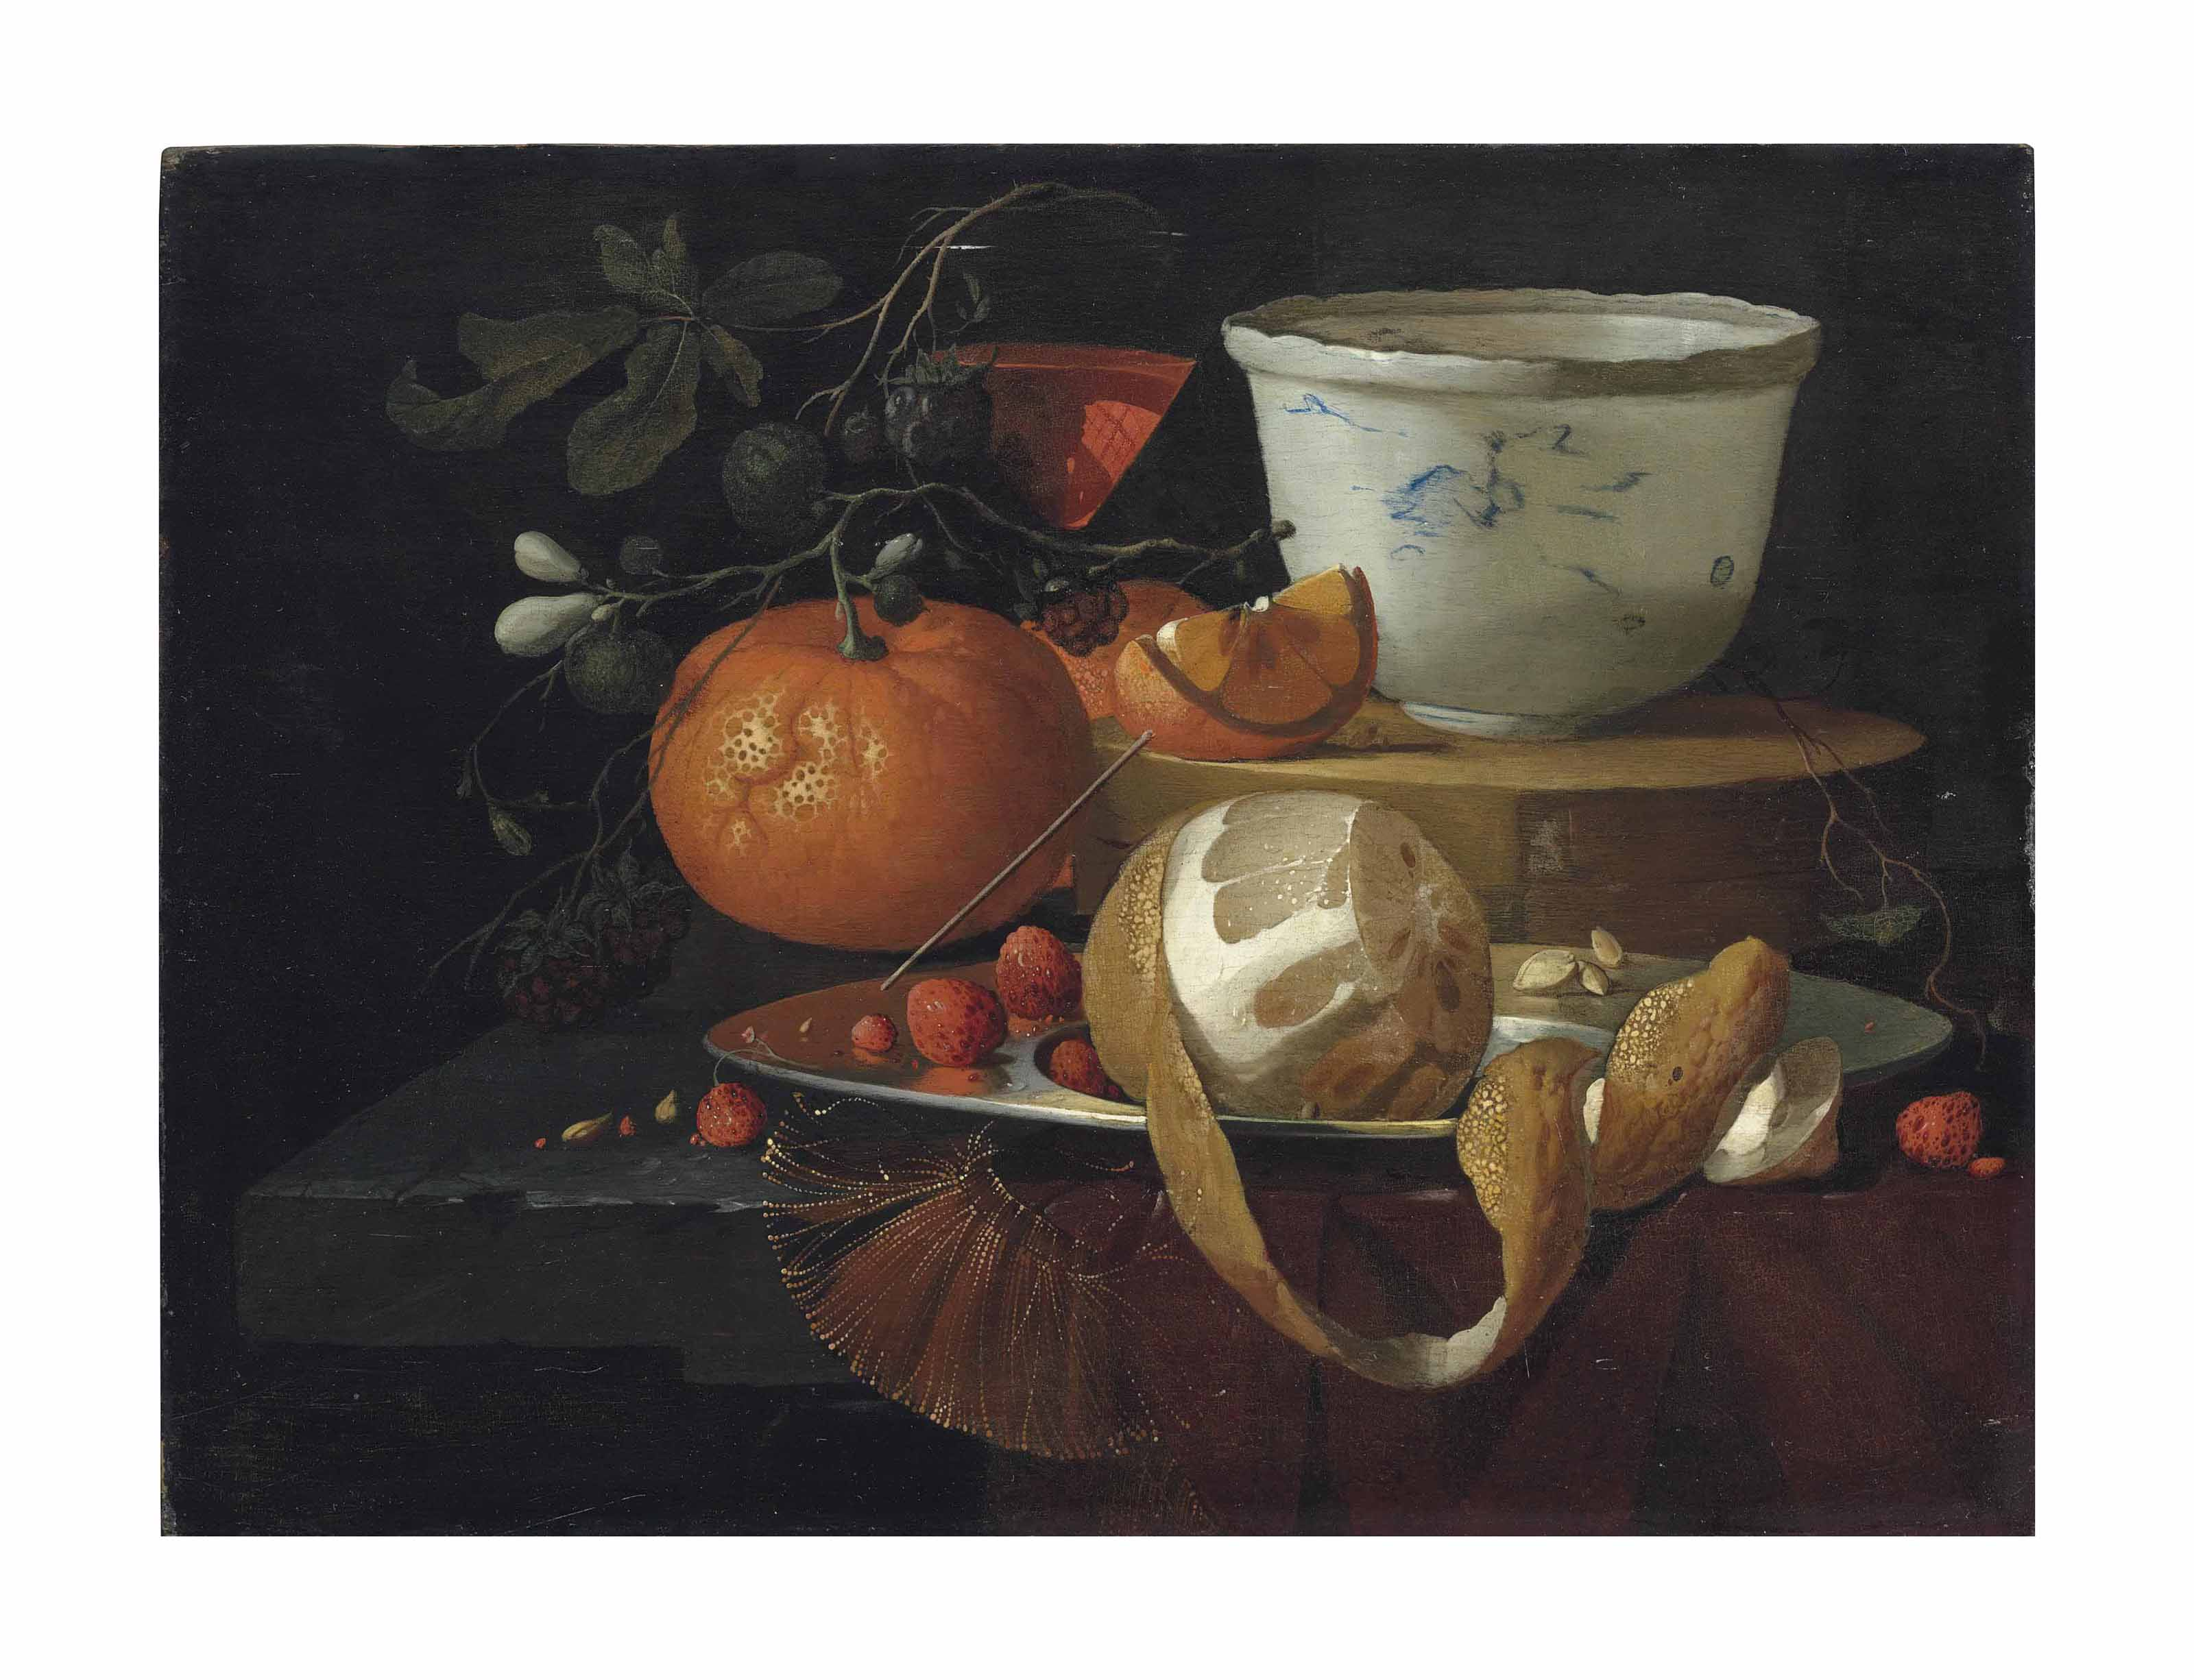 A partially peeled orange, strawberries and other fruit with a wine glass and Wan-li bowl on a partially draped stone ledge